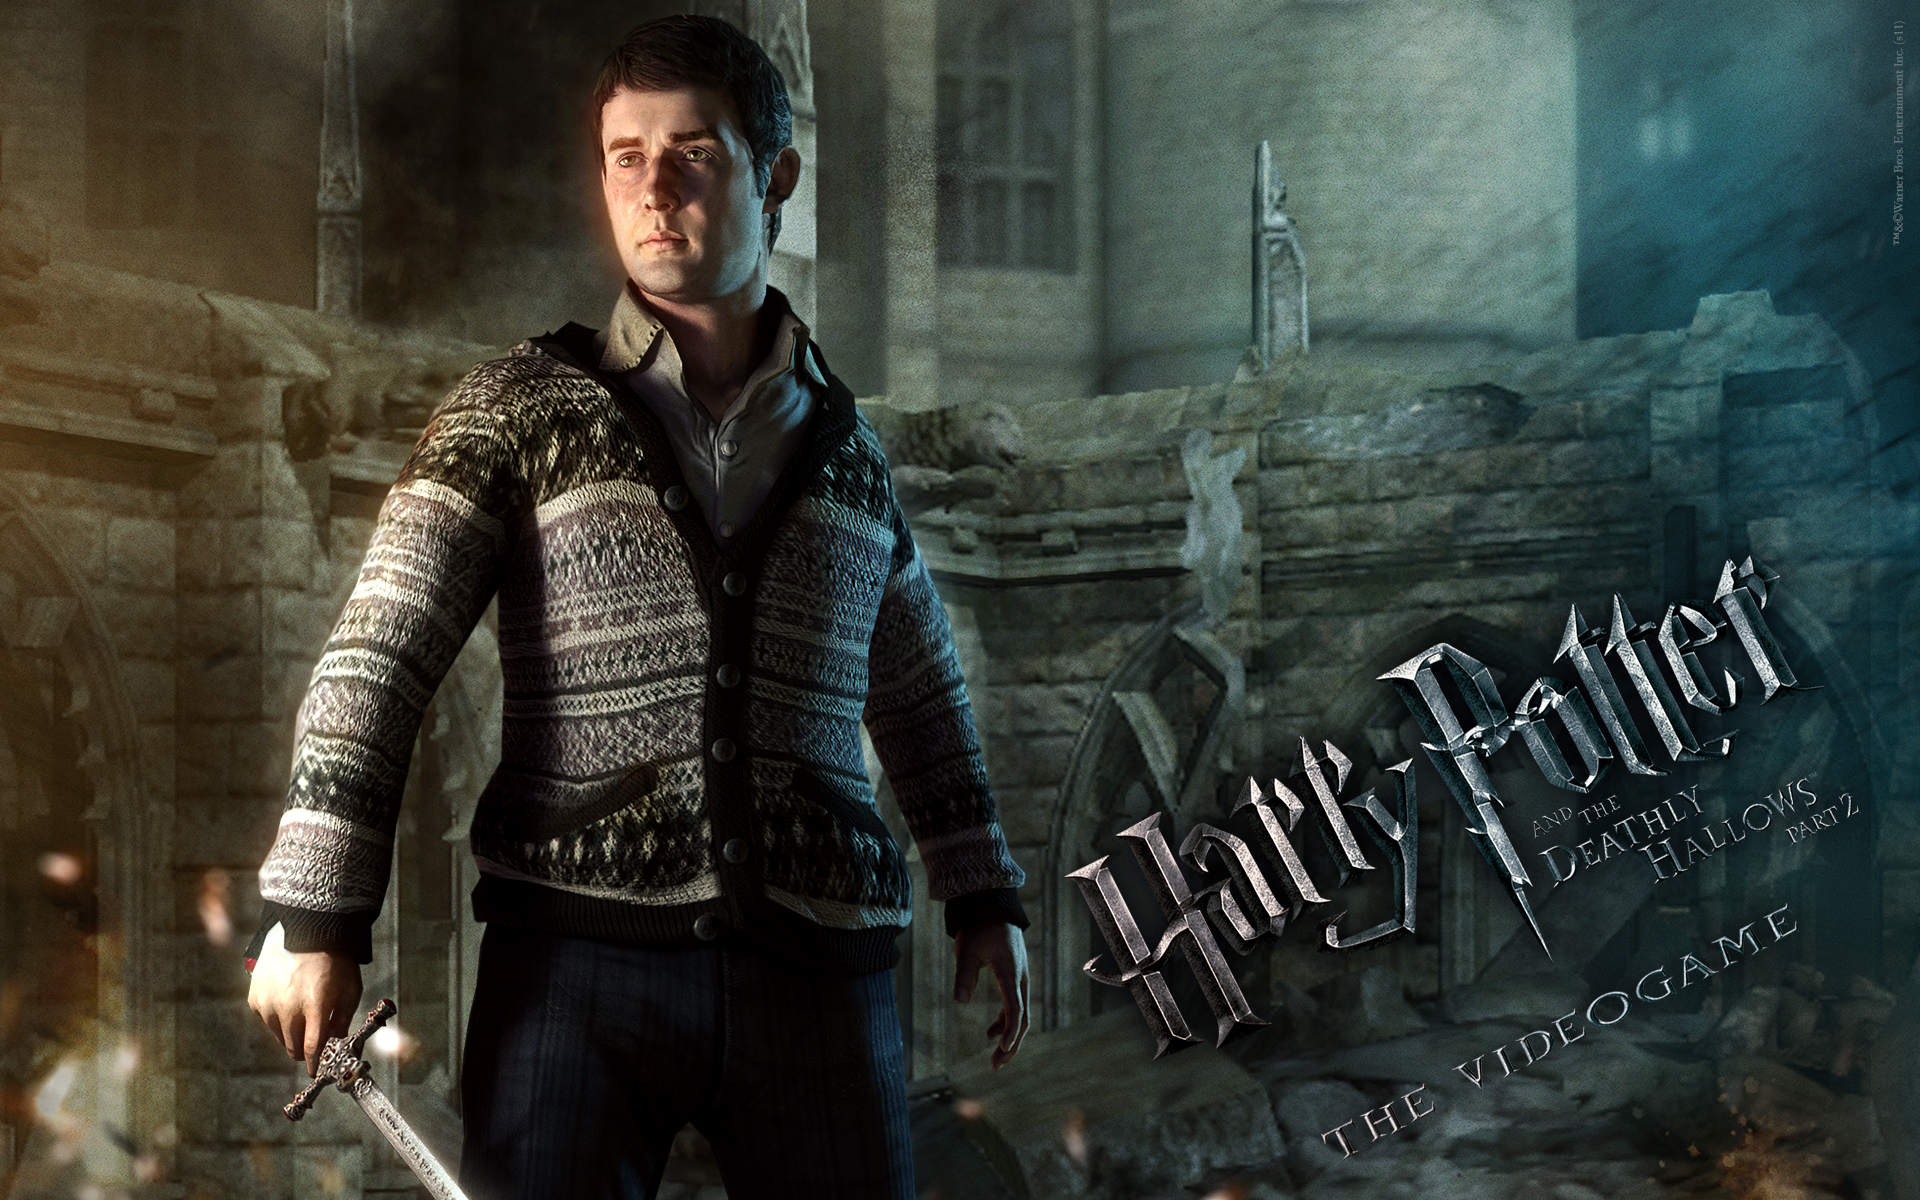 Neville Wallpaper from Harry Potter and the Deathly Hallows: Part 2 The Video Game